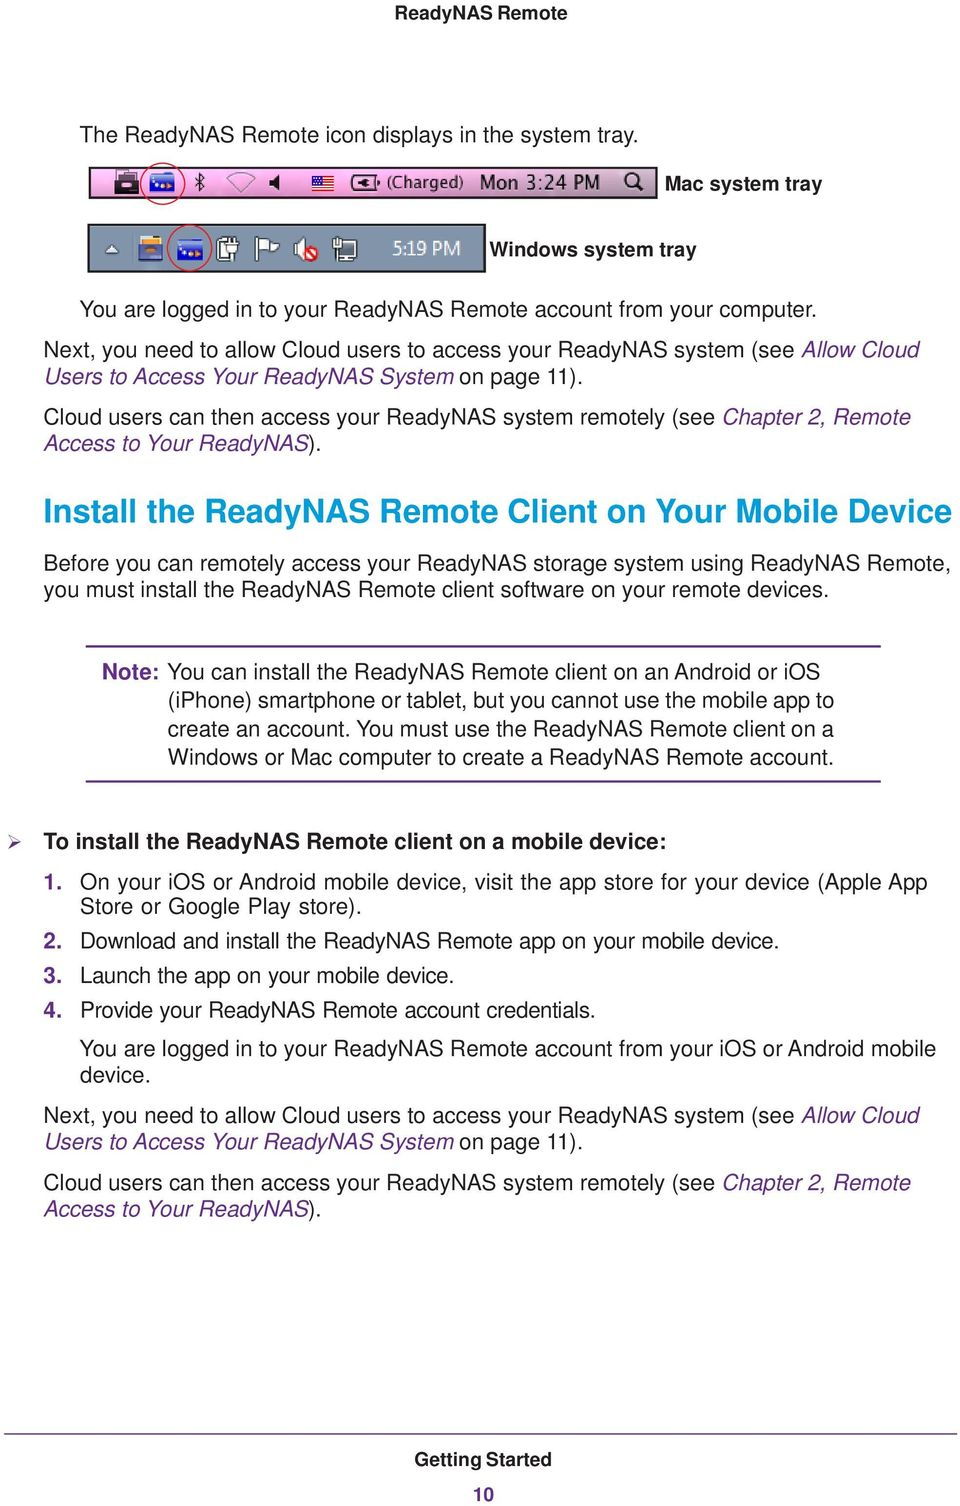 Cloud users can then access your ReadyNAS system remotely (see Chapter 2, Remote Access to Your ReadyNAS).